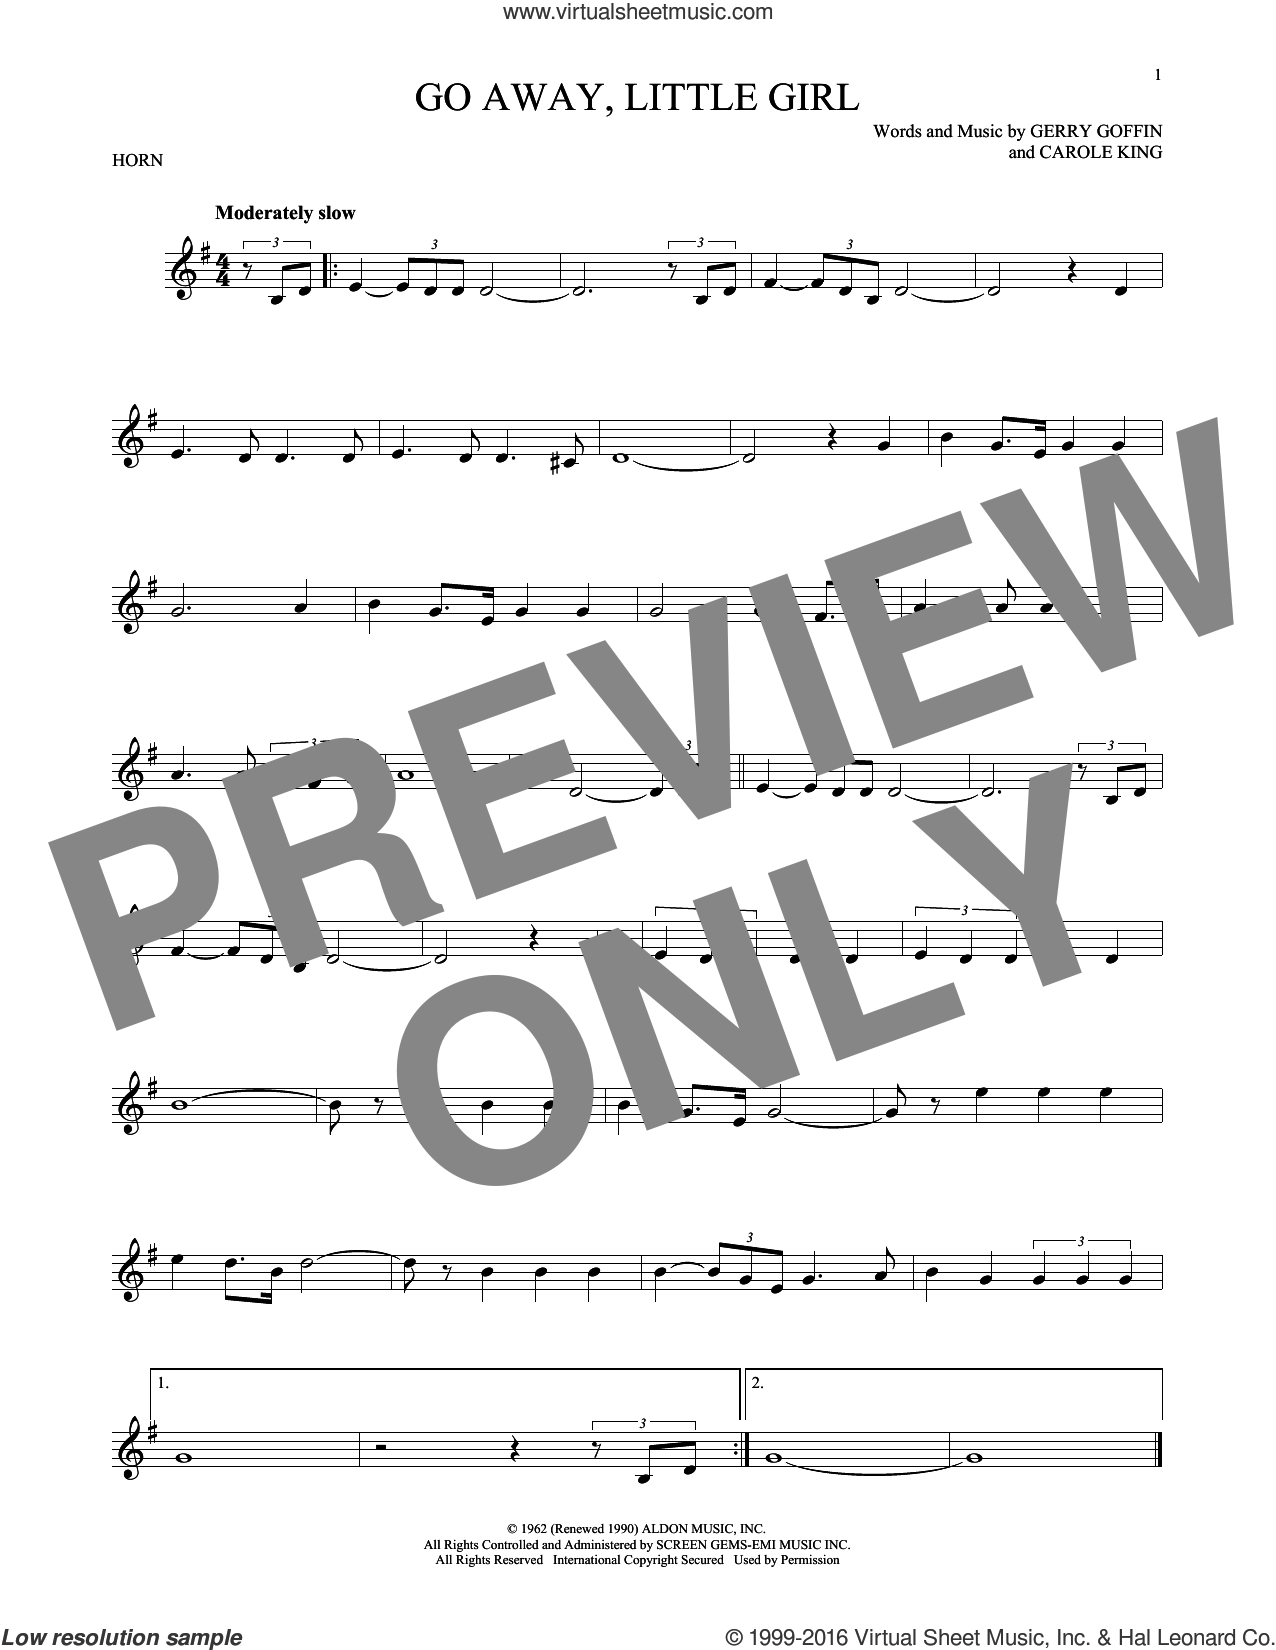 Go Away, Little Girl sheet music for horn solo by Donny Osmond, Steve Lawrence, Carole King and Gerry Goffin, intermediate skill level